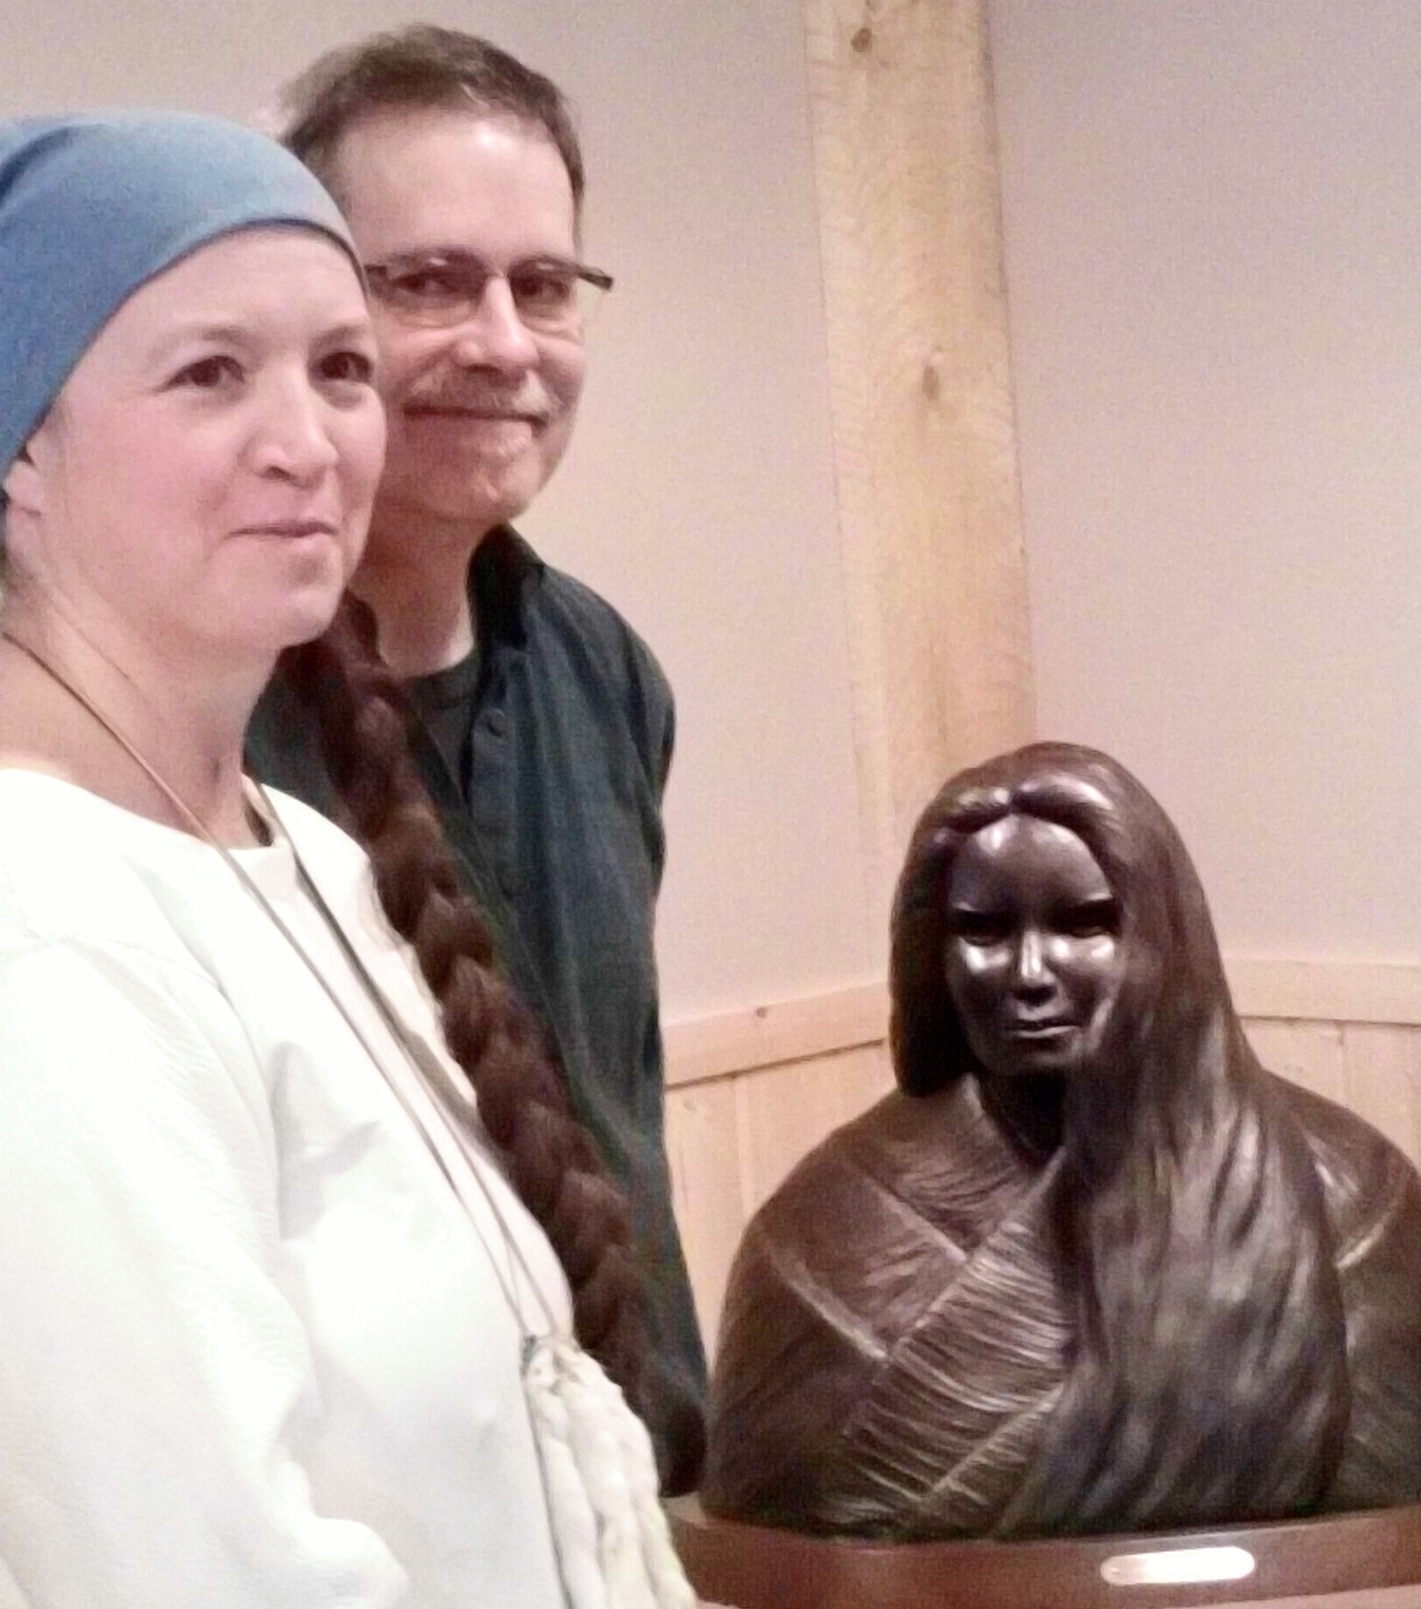 Sharon and Don with Bust 3.jpg